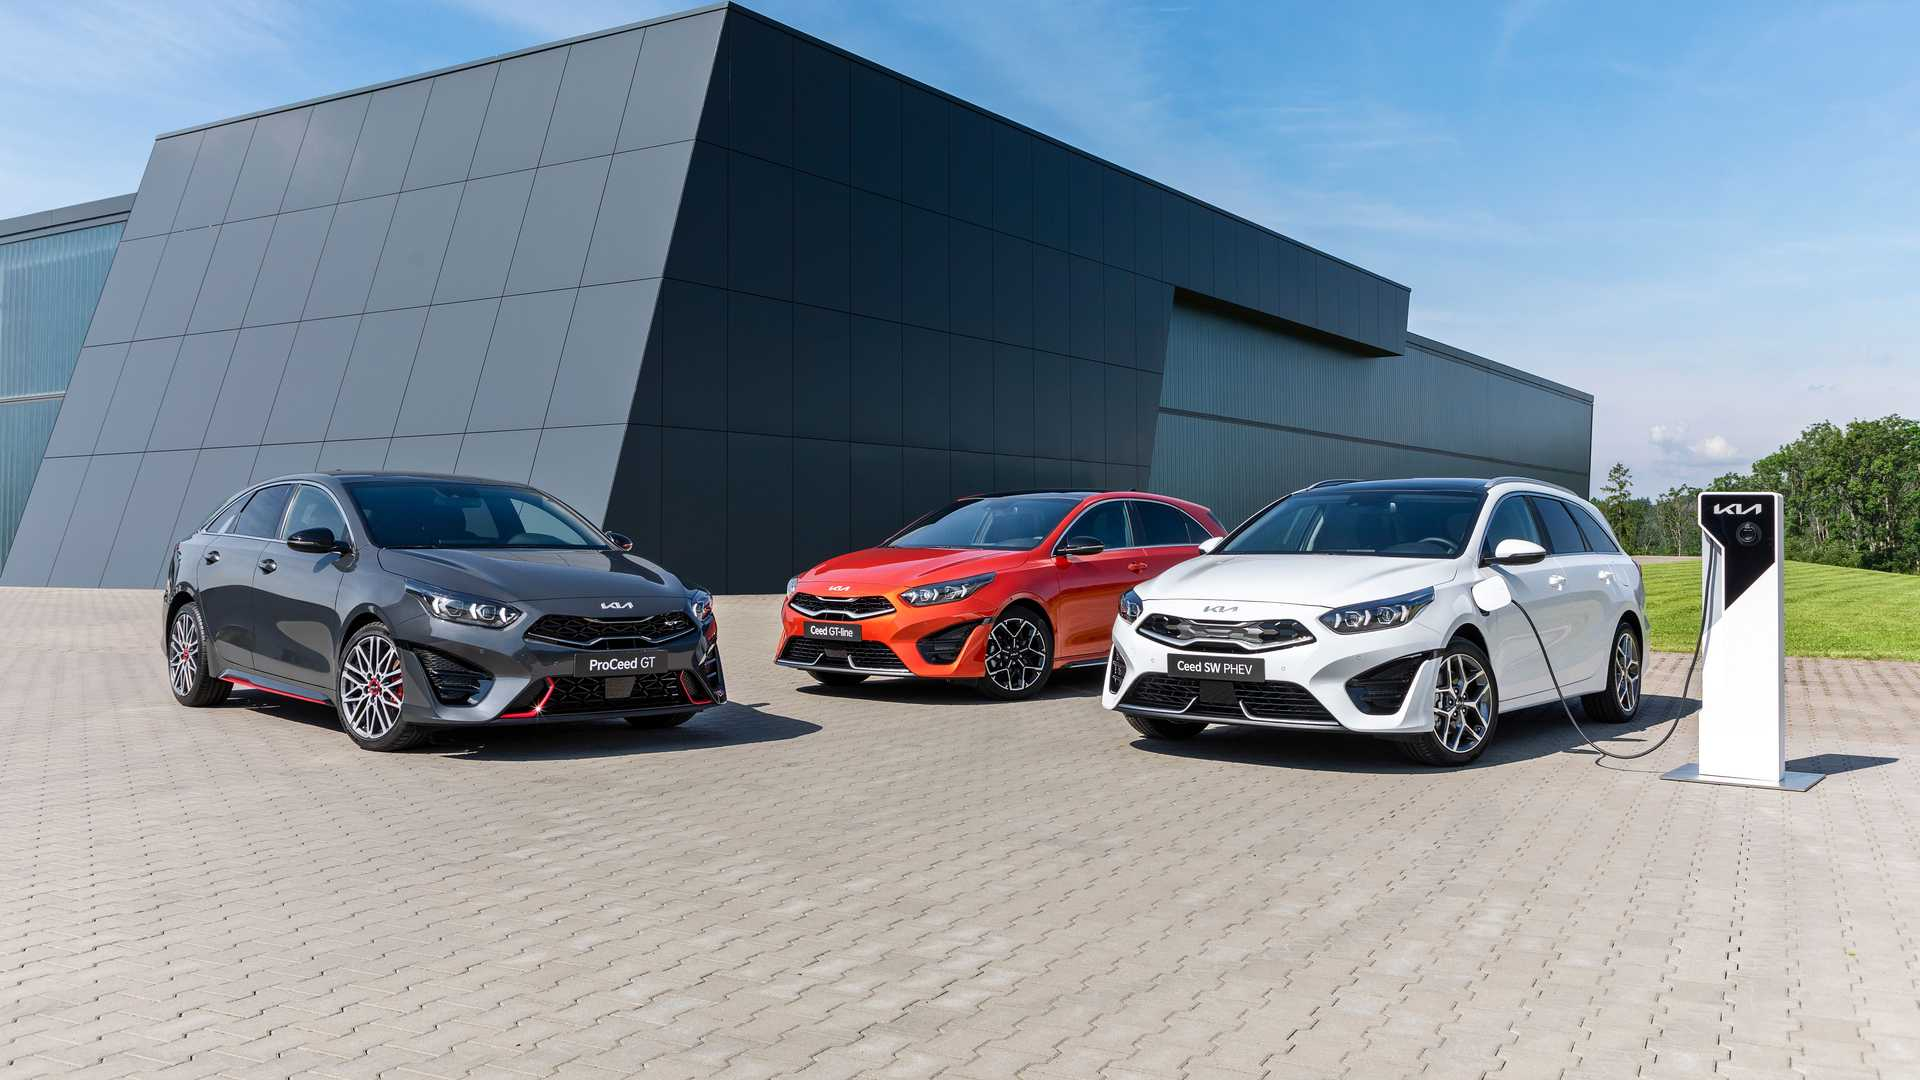 South Korean automaker Kia has rolled out the restyled third-gen Ceed range, landing it with mostly cosmetic upgrades and some useful new driving aids.